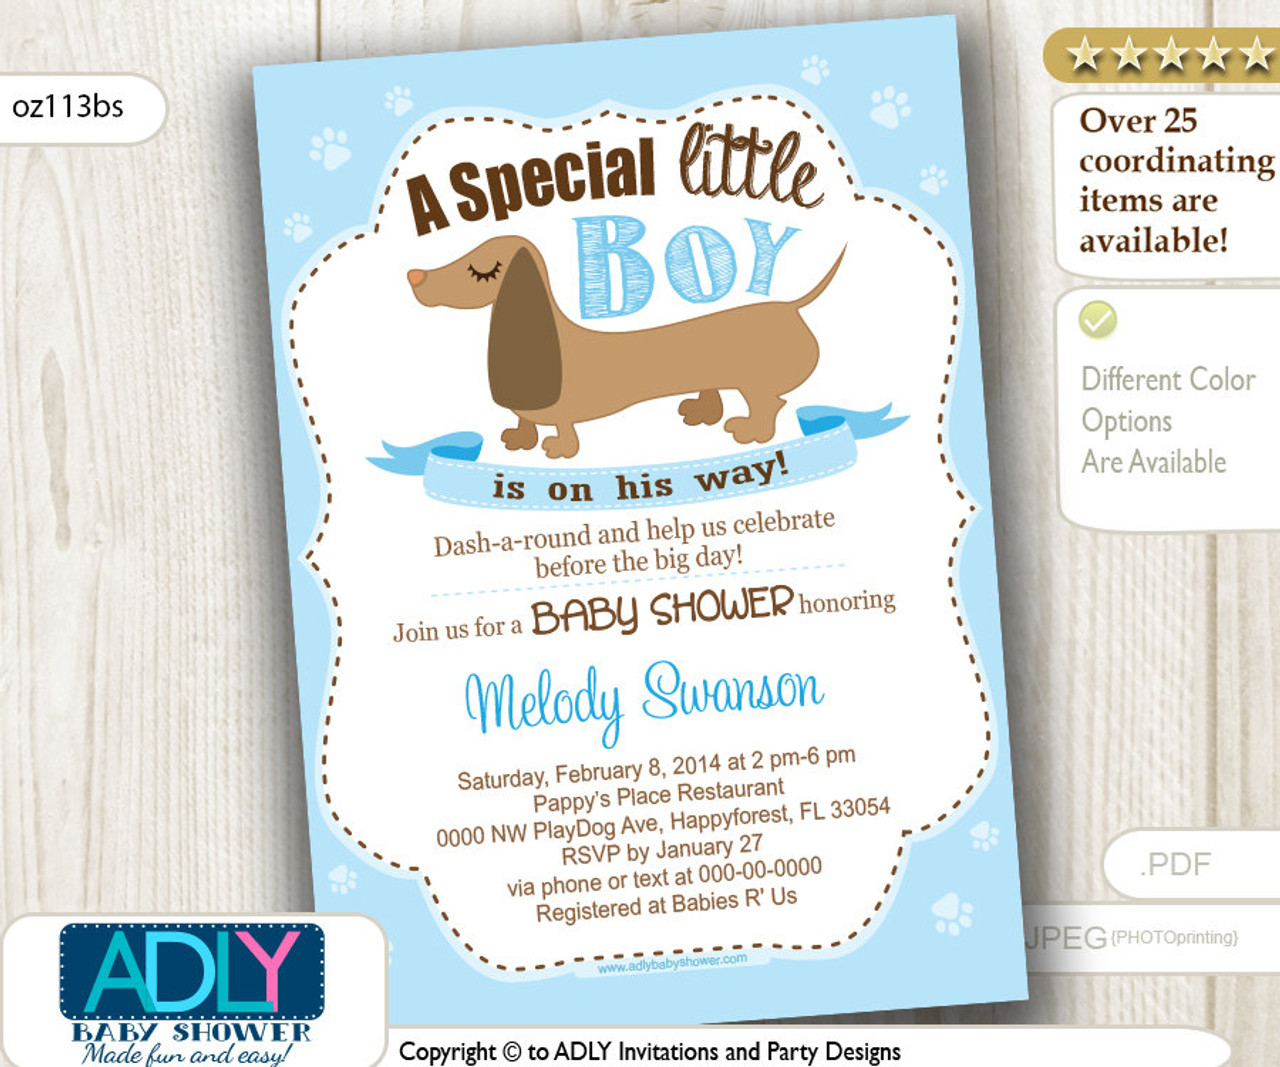 graphic regarding Baby Shower Invitation Printable named Boy Sausage Pet Little one Shower Invitation, Printable Dachshund Little one Shower Card for a little one shower.Youngster Blue, do it yourself,brown pet dog-oz113bs